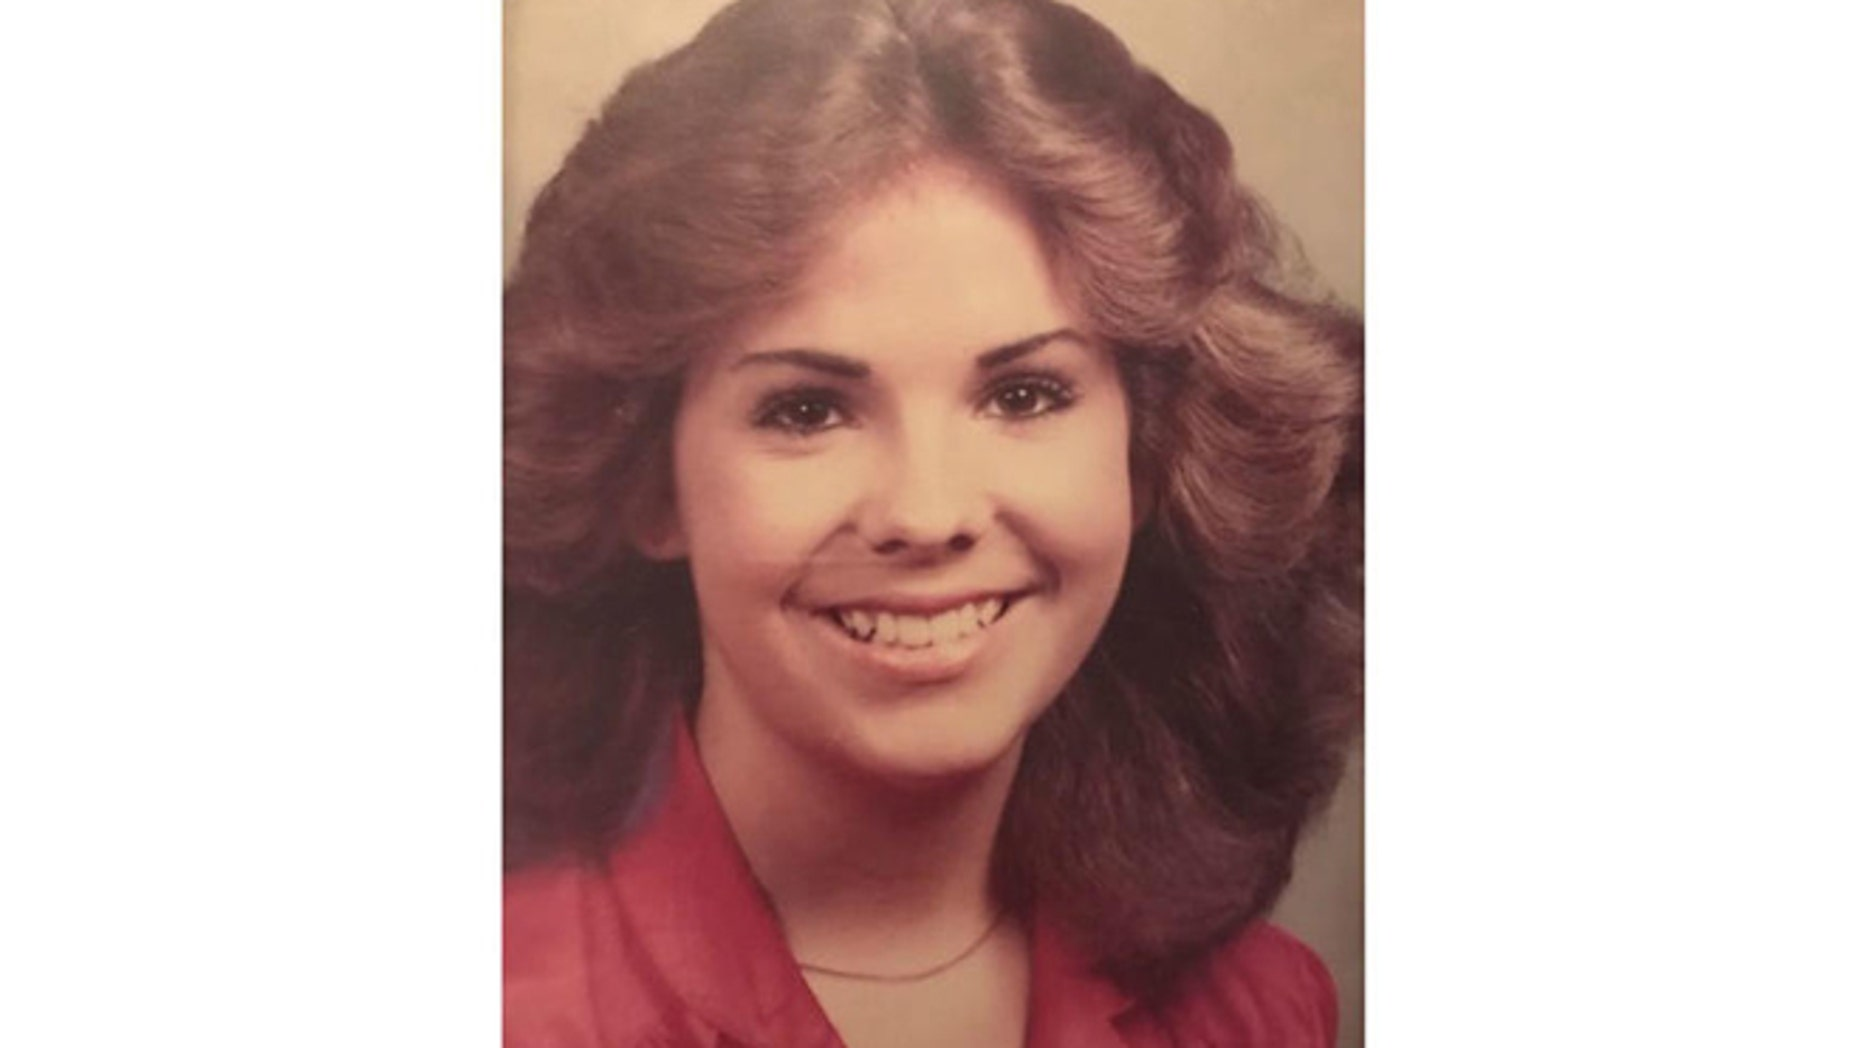 Andrea Kuiper has been identified as the woman killed 27 years ago as she crossed Pacific Coast Highway in Huntington Beach on foot.